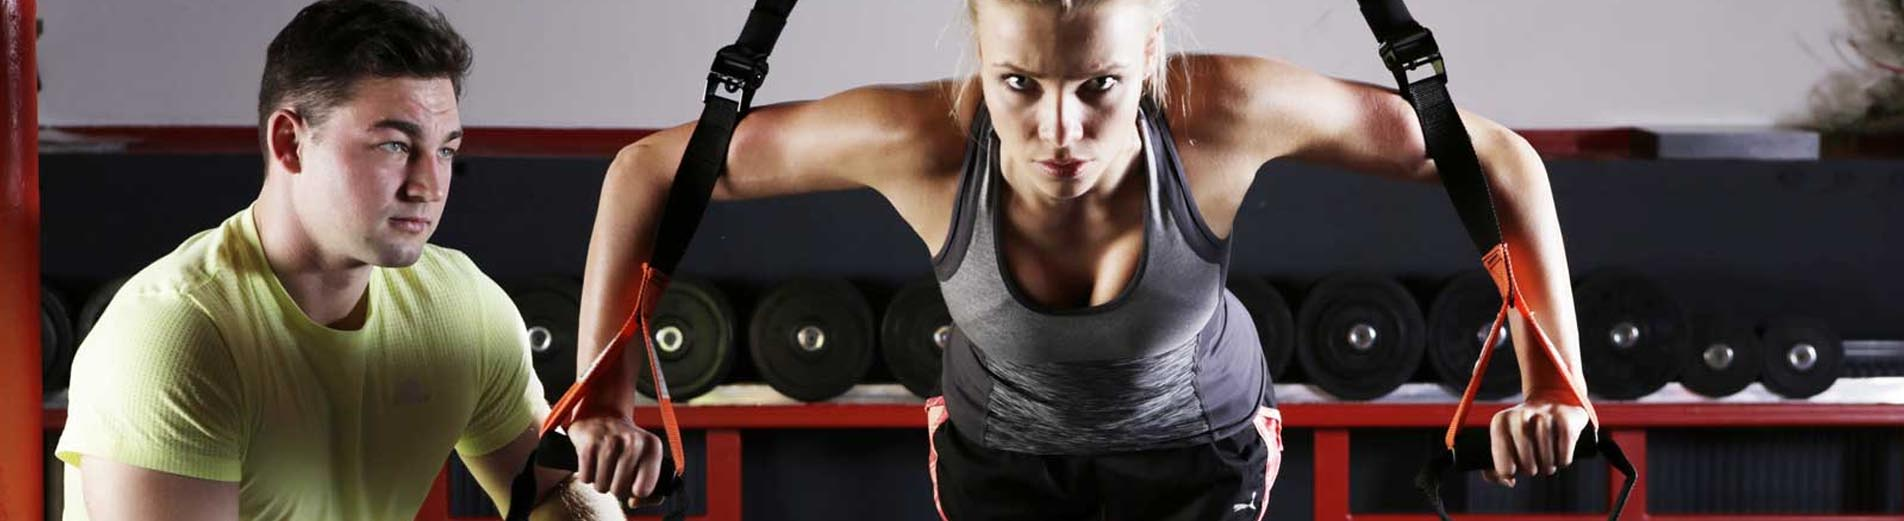 Corso Functional Training Certification